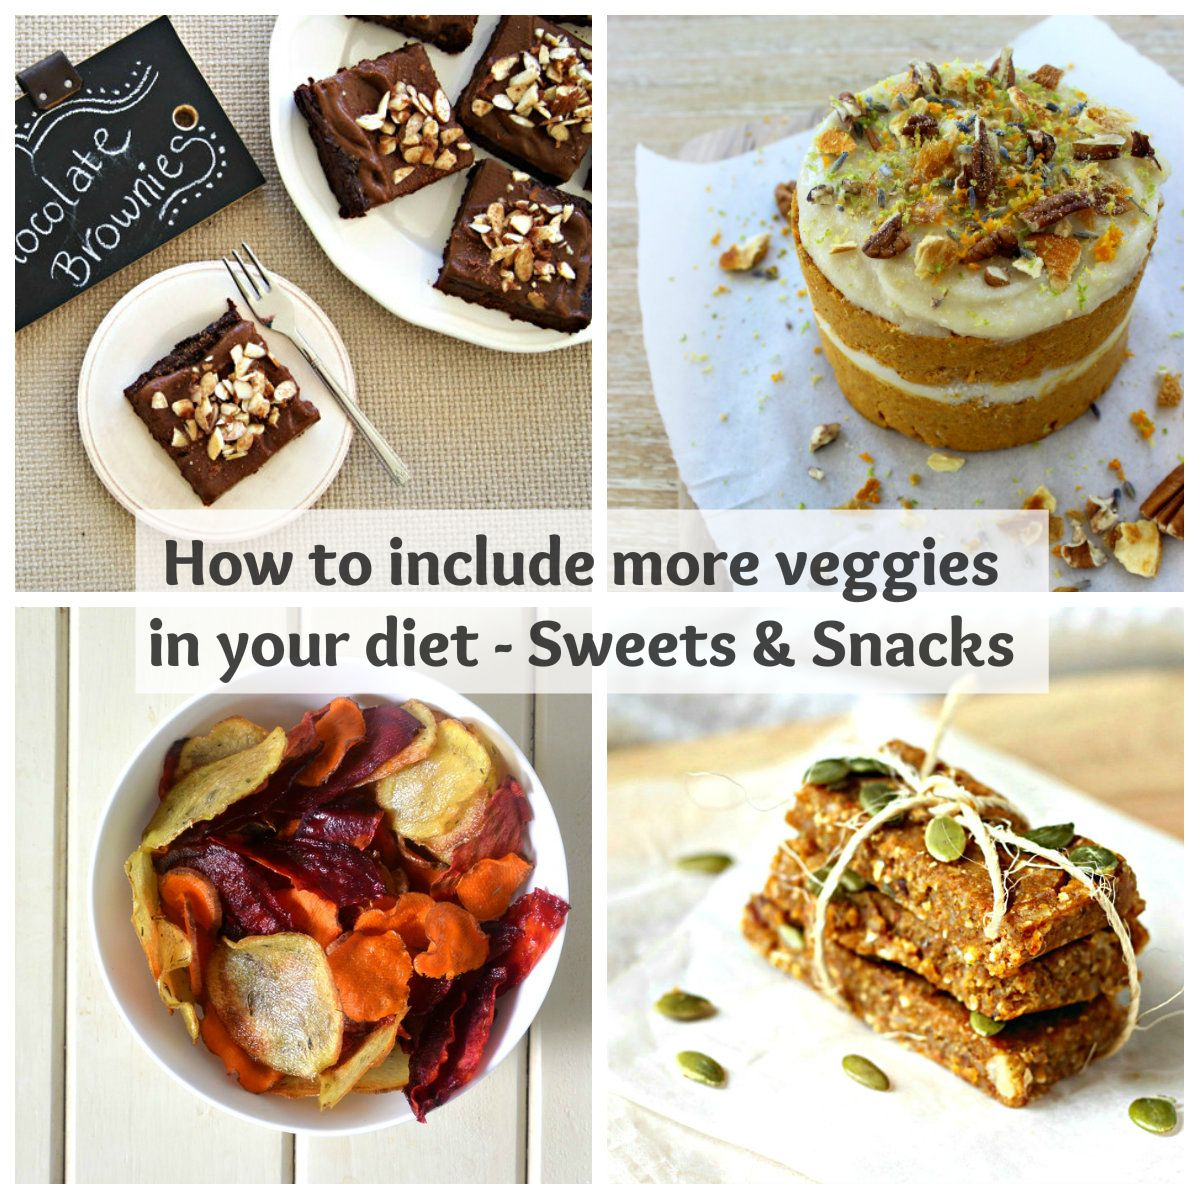 How to include more veggies in your diet - to her core